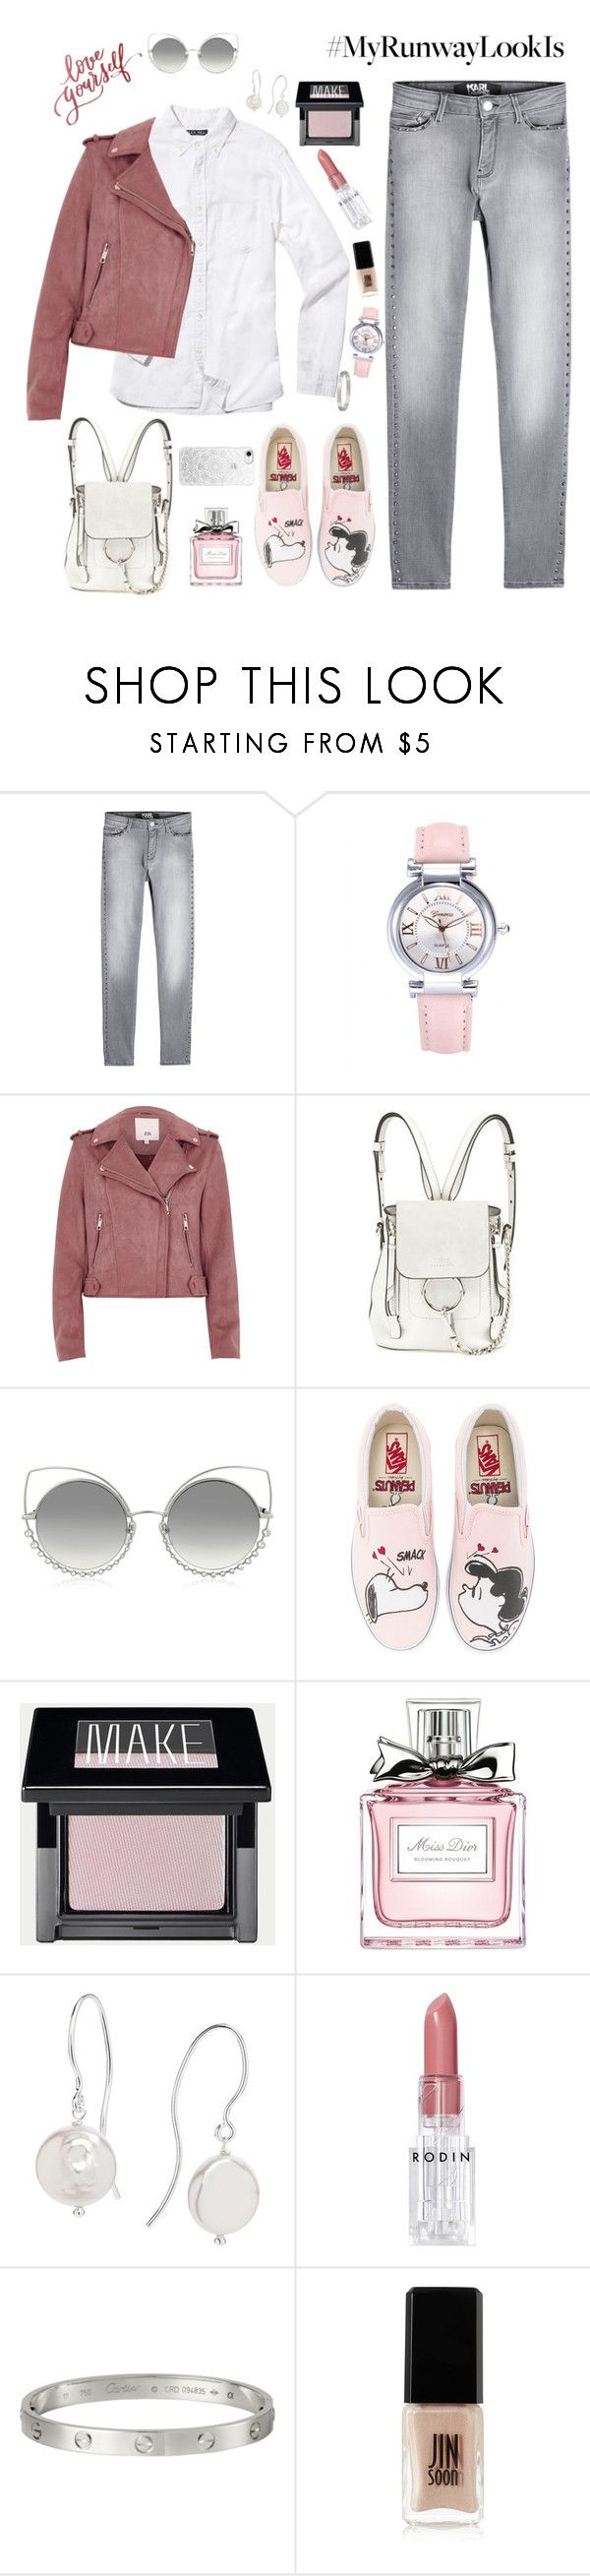 """""""Love yourself"""" by giotabi ❤ liked on Polyvore featuring Karl Lagerfeld, Alex Mill, River Island, Chloé, Marc Jacobs, Vans, Christian Dior, Claudia Bradby, Rodin and JINsoon"""